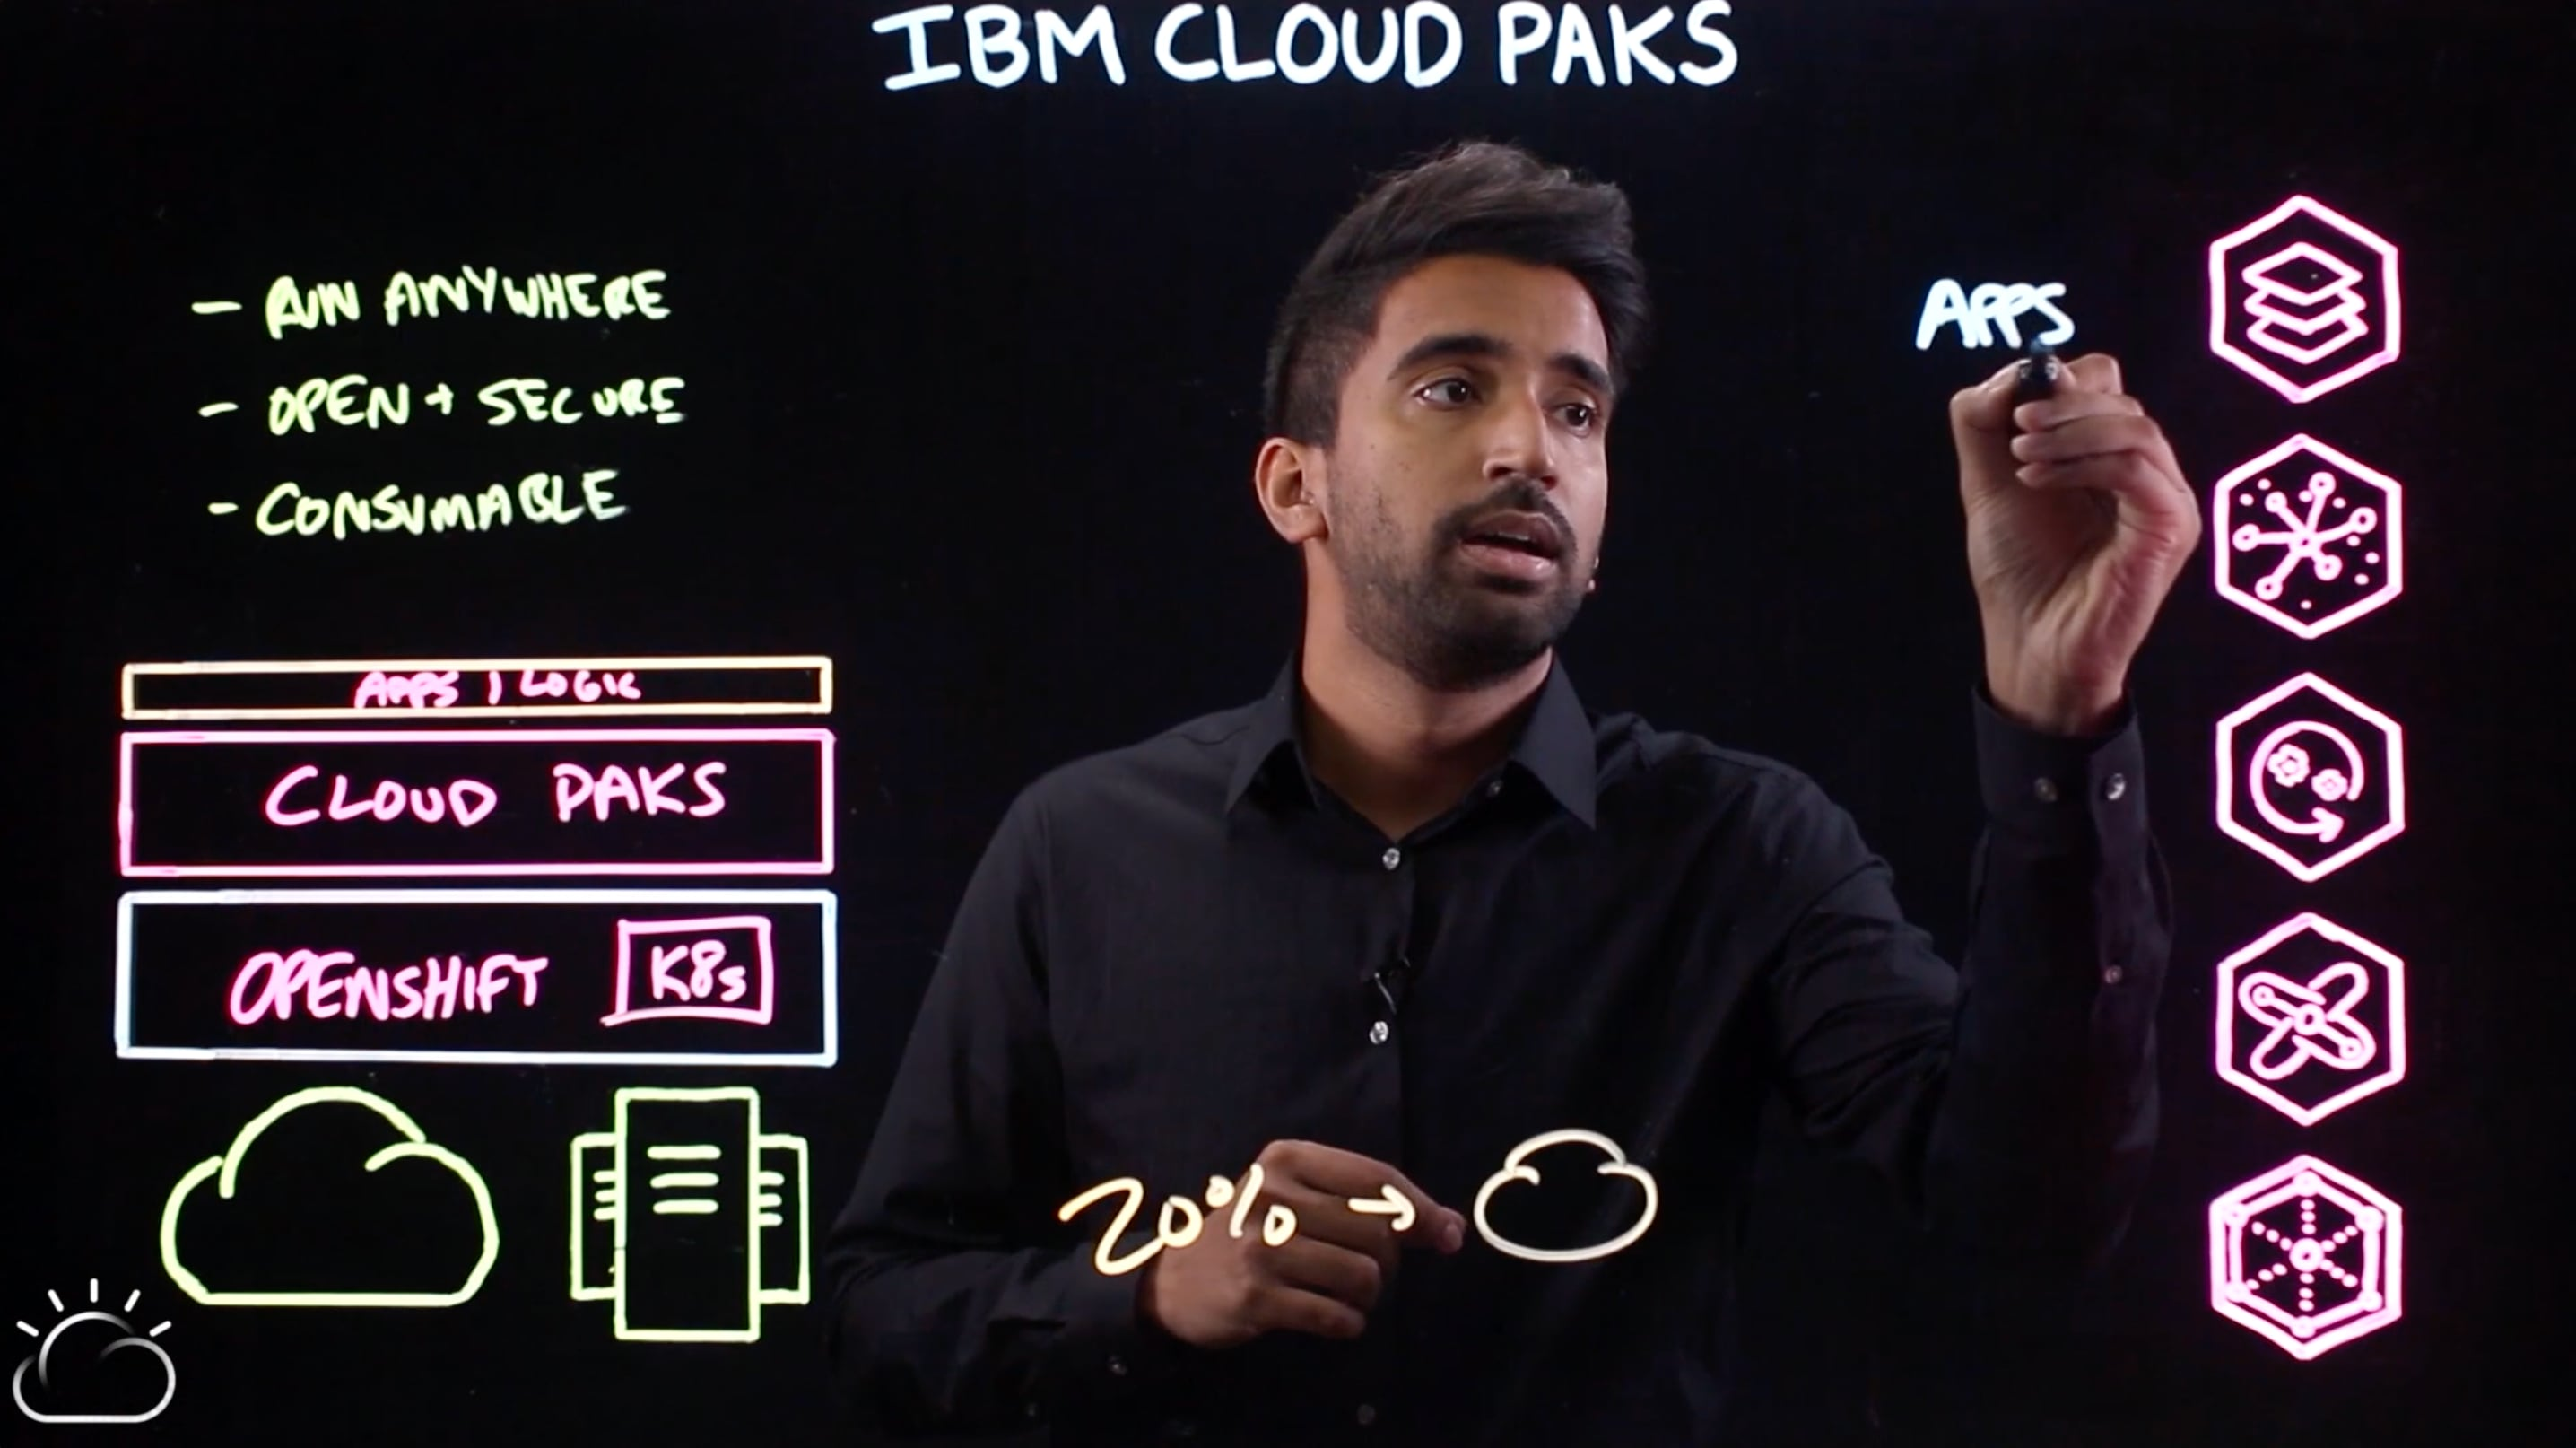 IBM Cloud Pak for Apps